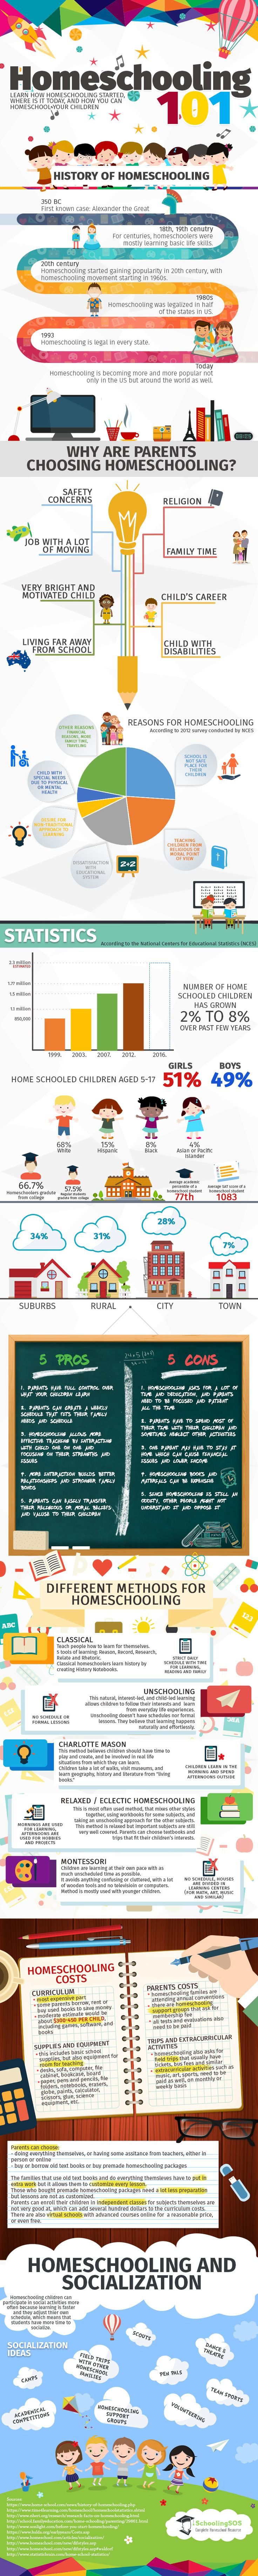 Did you know over 66% of homeschoolers graduate college? Or that the number 1 and 2 reason for homeschool are safety and religion? Here is a great infographic on homeschool. Visit SchoolingSOS.com…